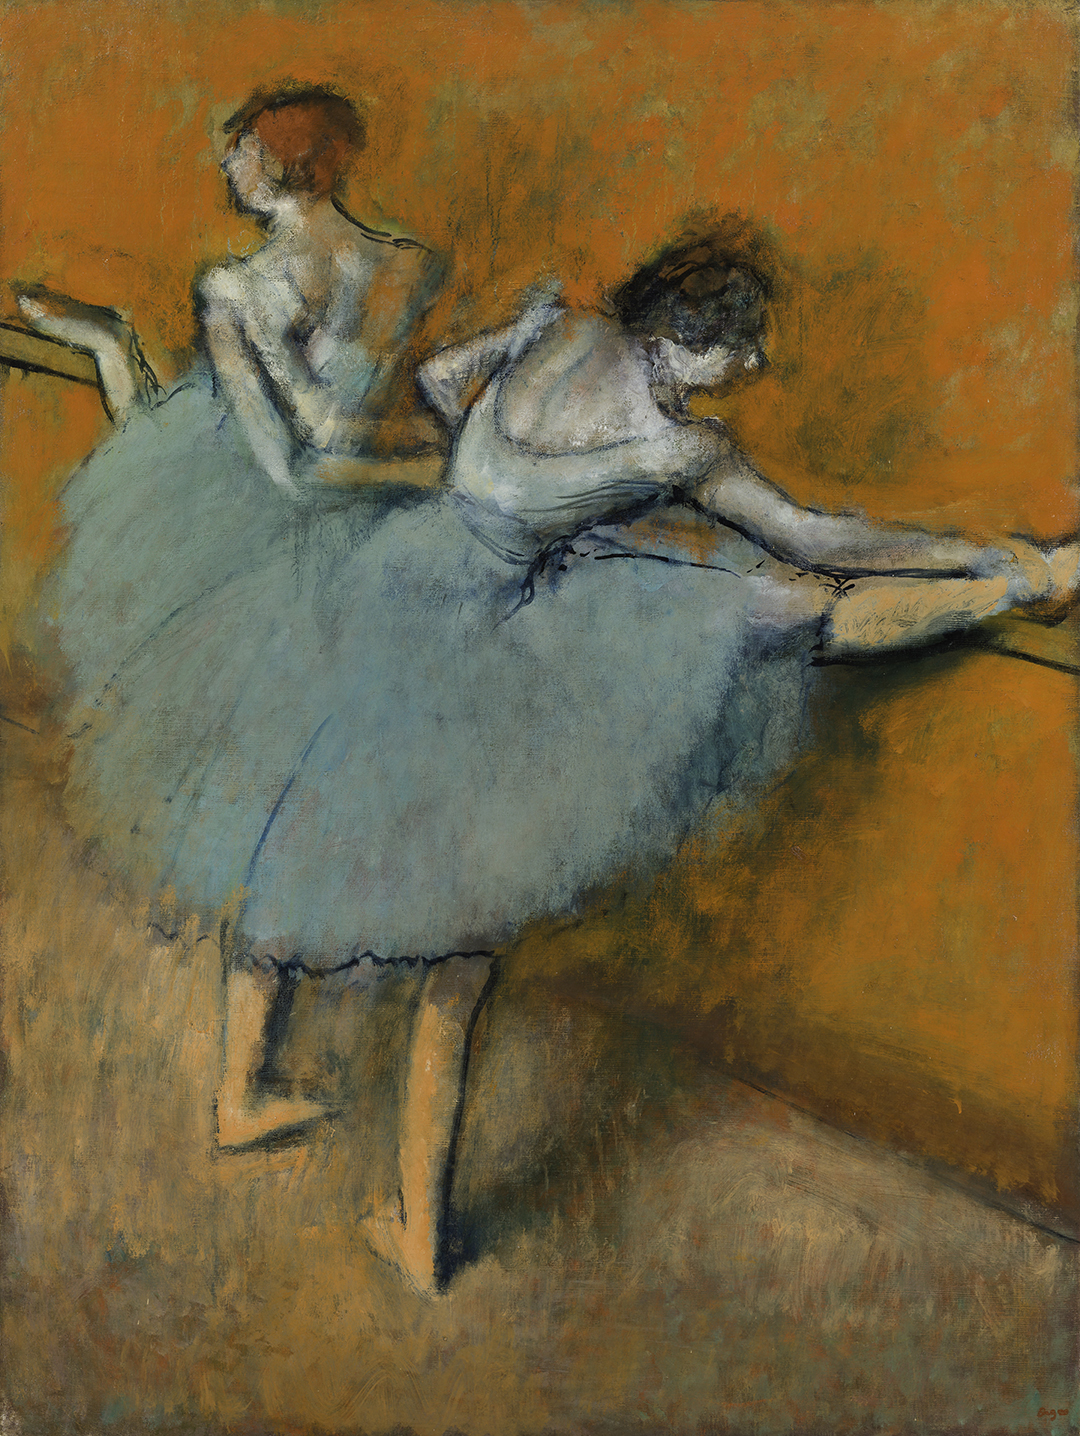 ModVis 028_Degas_Dancers at the Bar crop.jpg